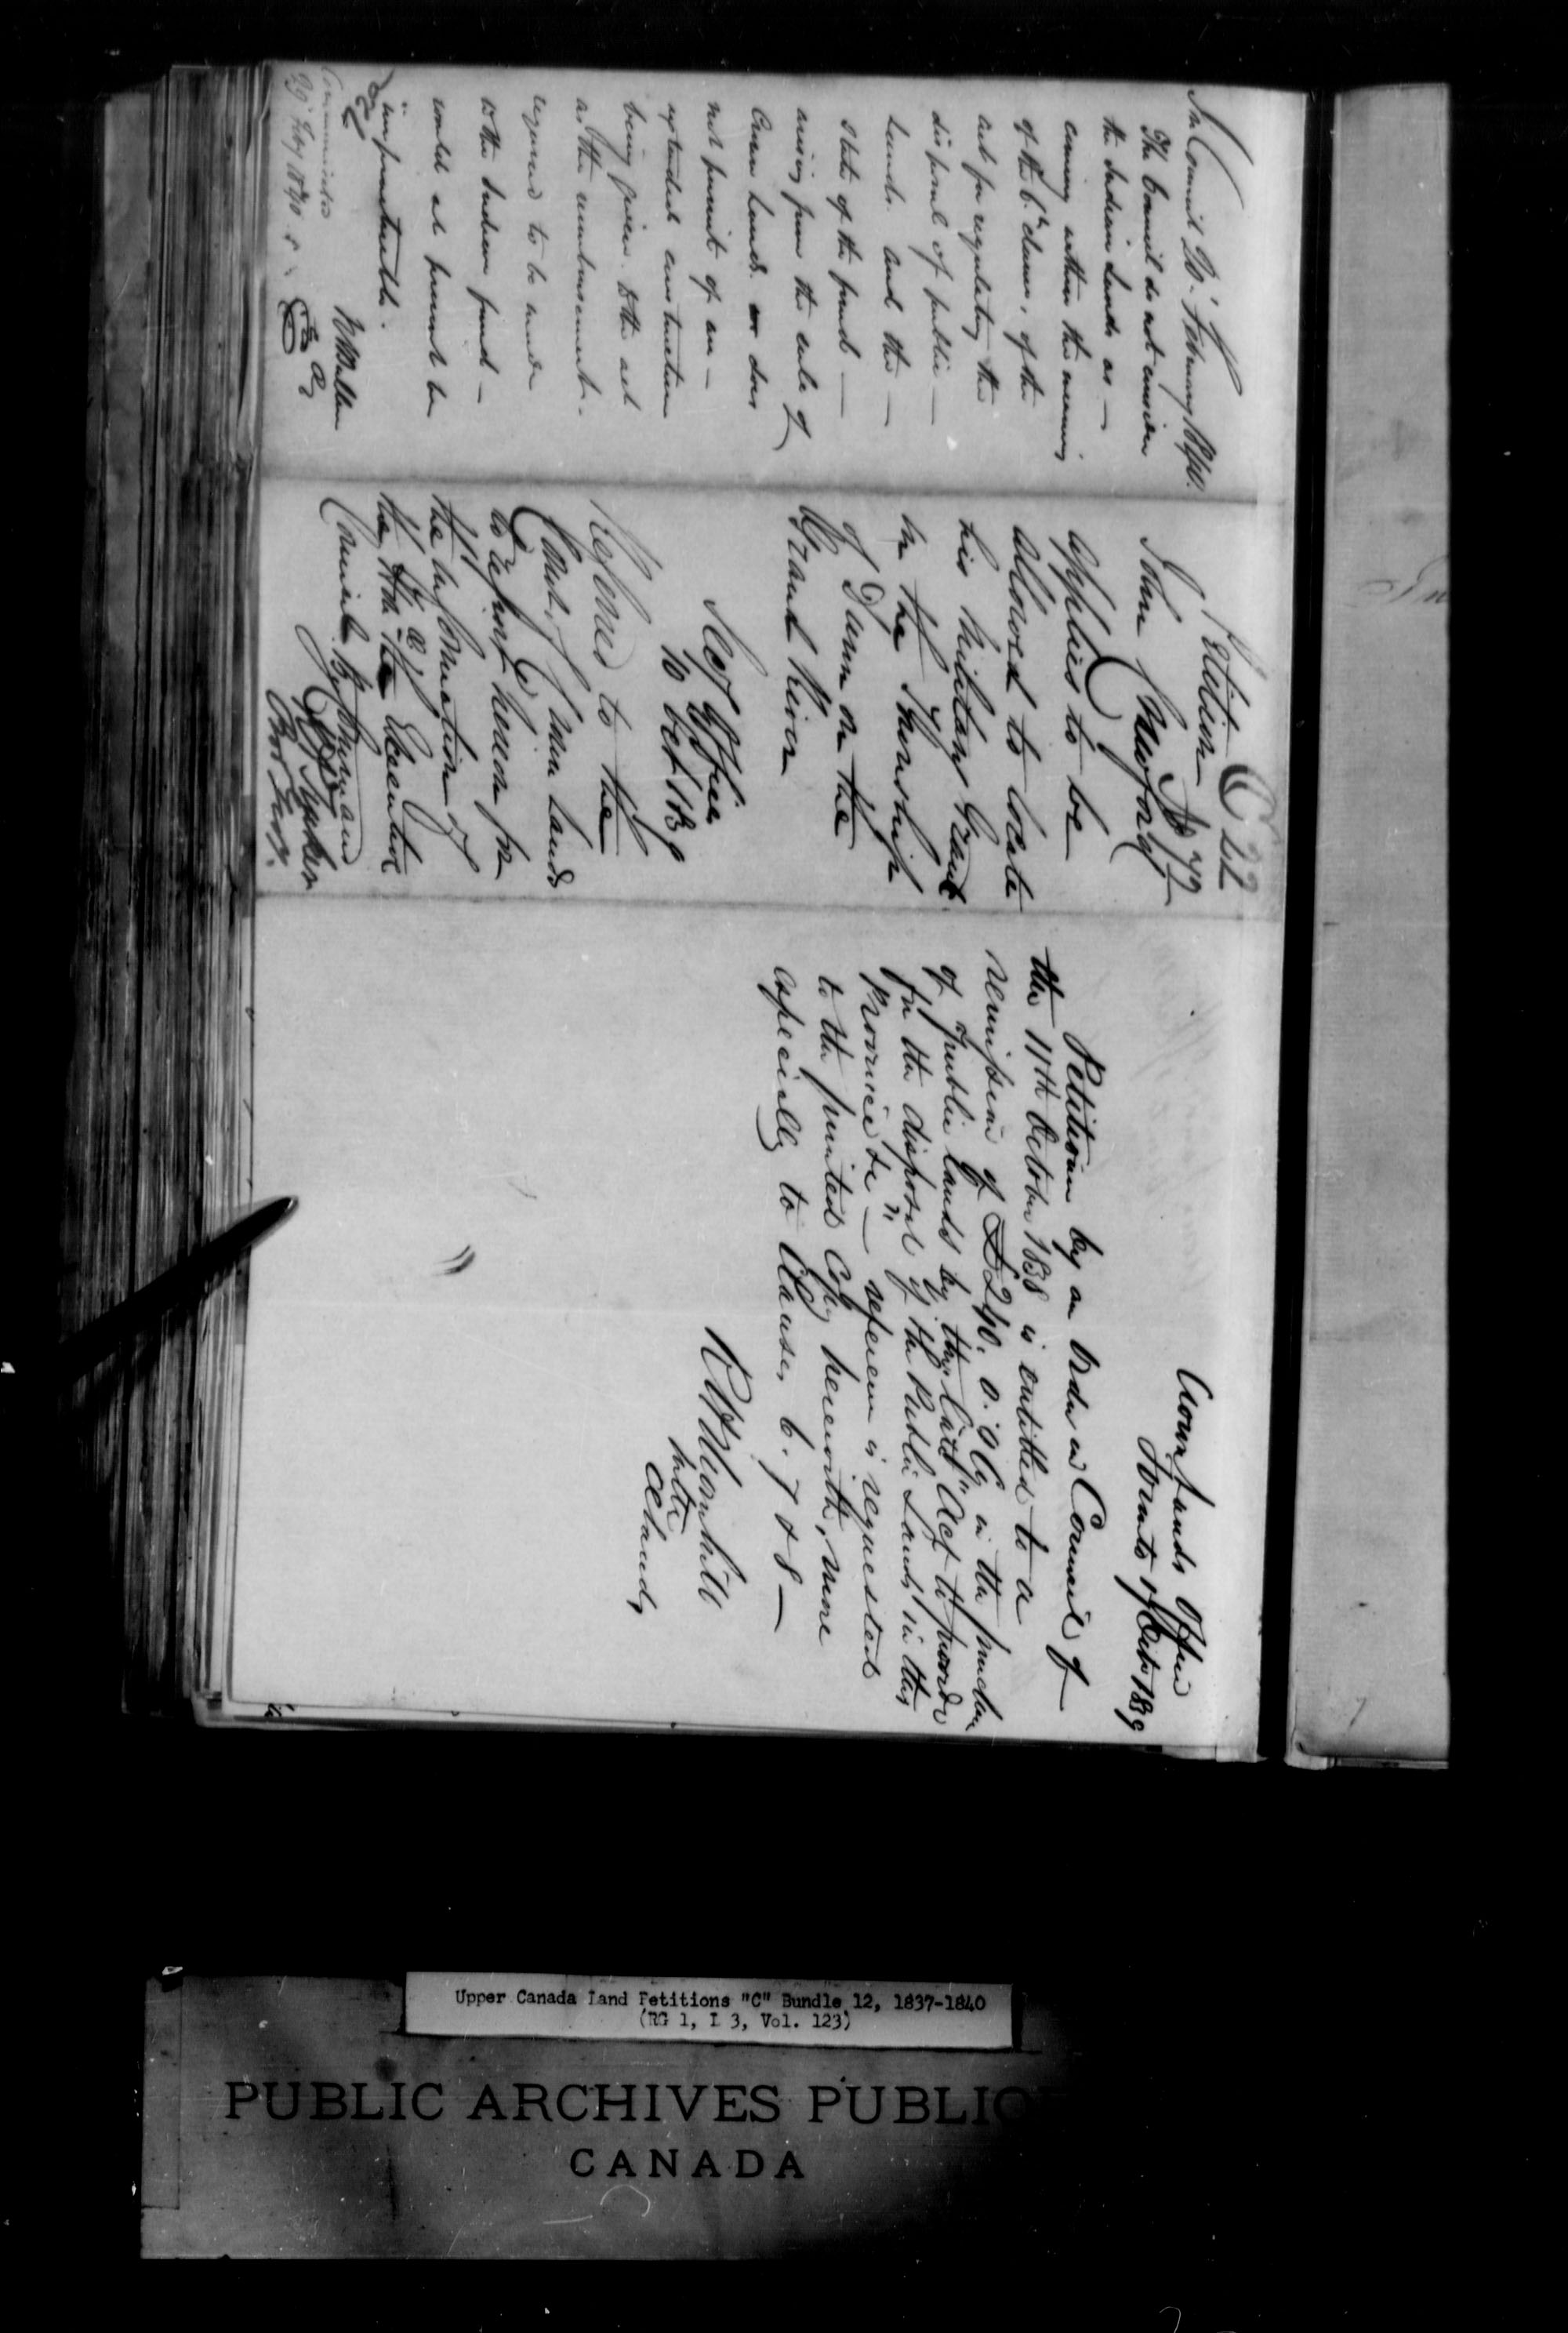 Title: Upper Canada Land Petitions (1763-1865) - Mikan Number: 205131 - Microform: c-1730